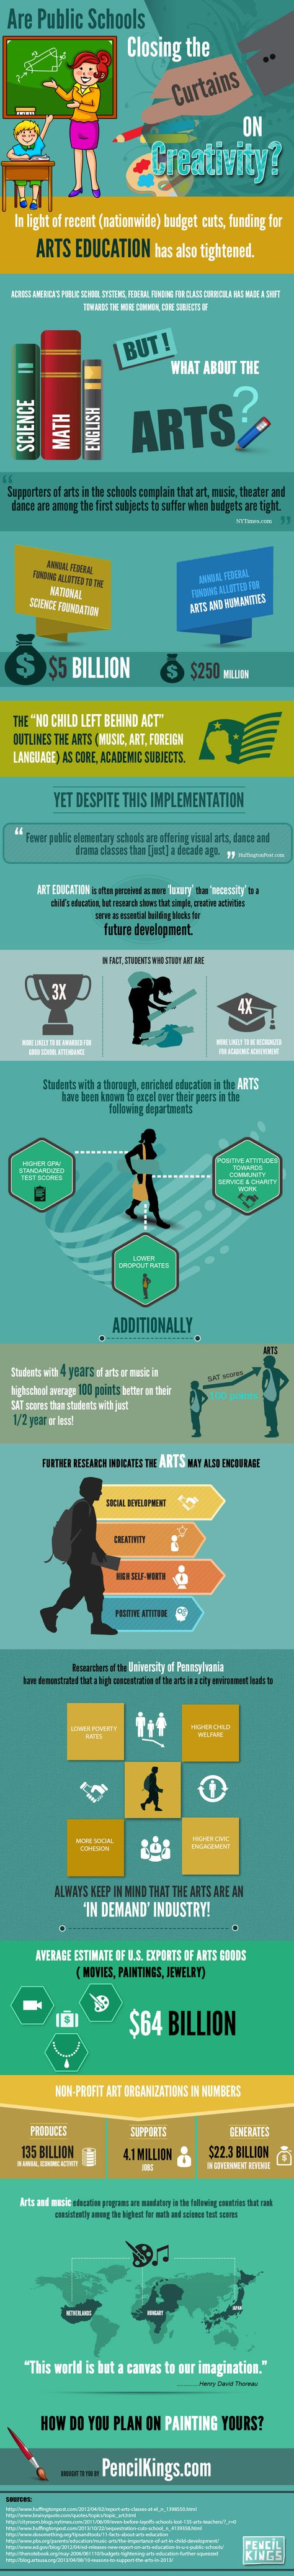 The Significance Of Creativity In Public Schools Infographic examines